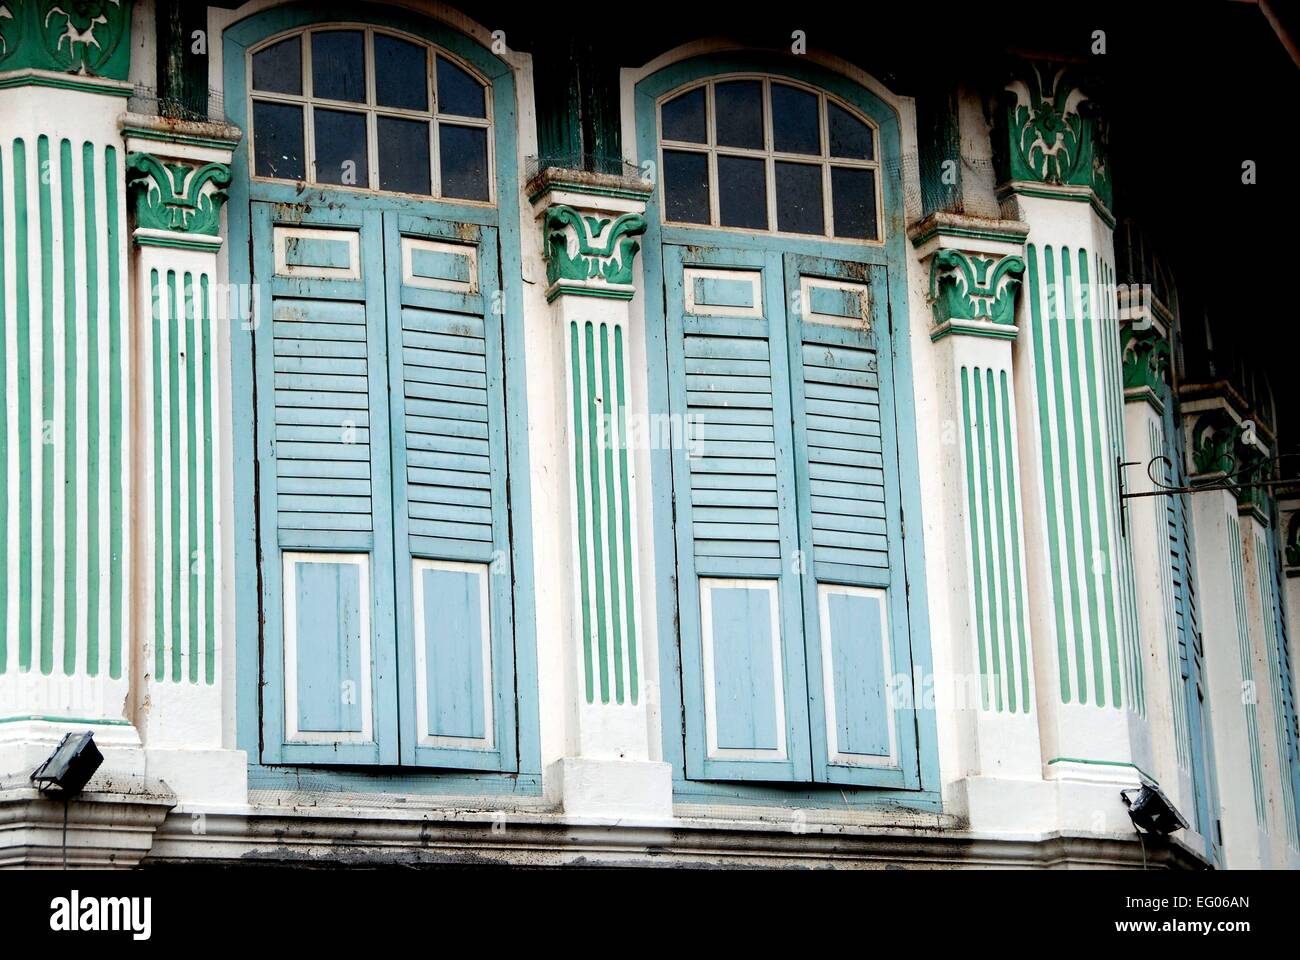 singapore: 19th century chinese shop houses with decorative stock